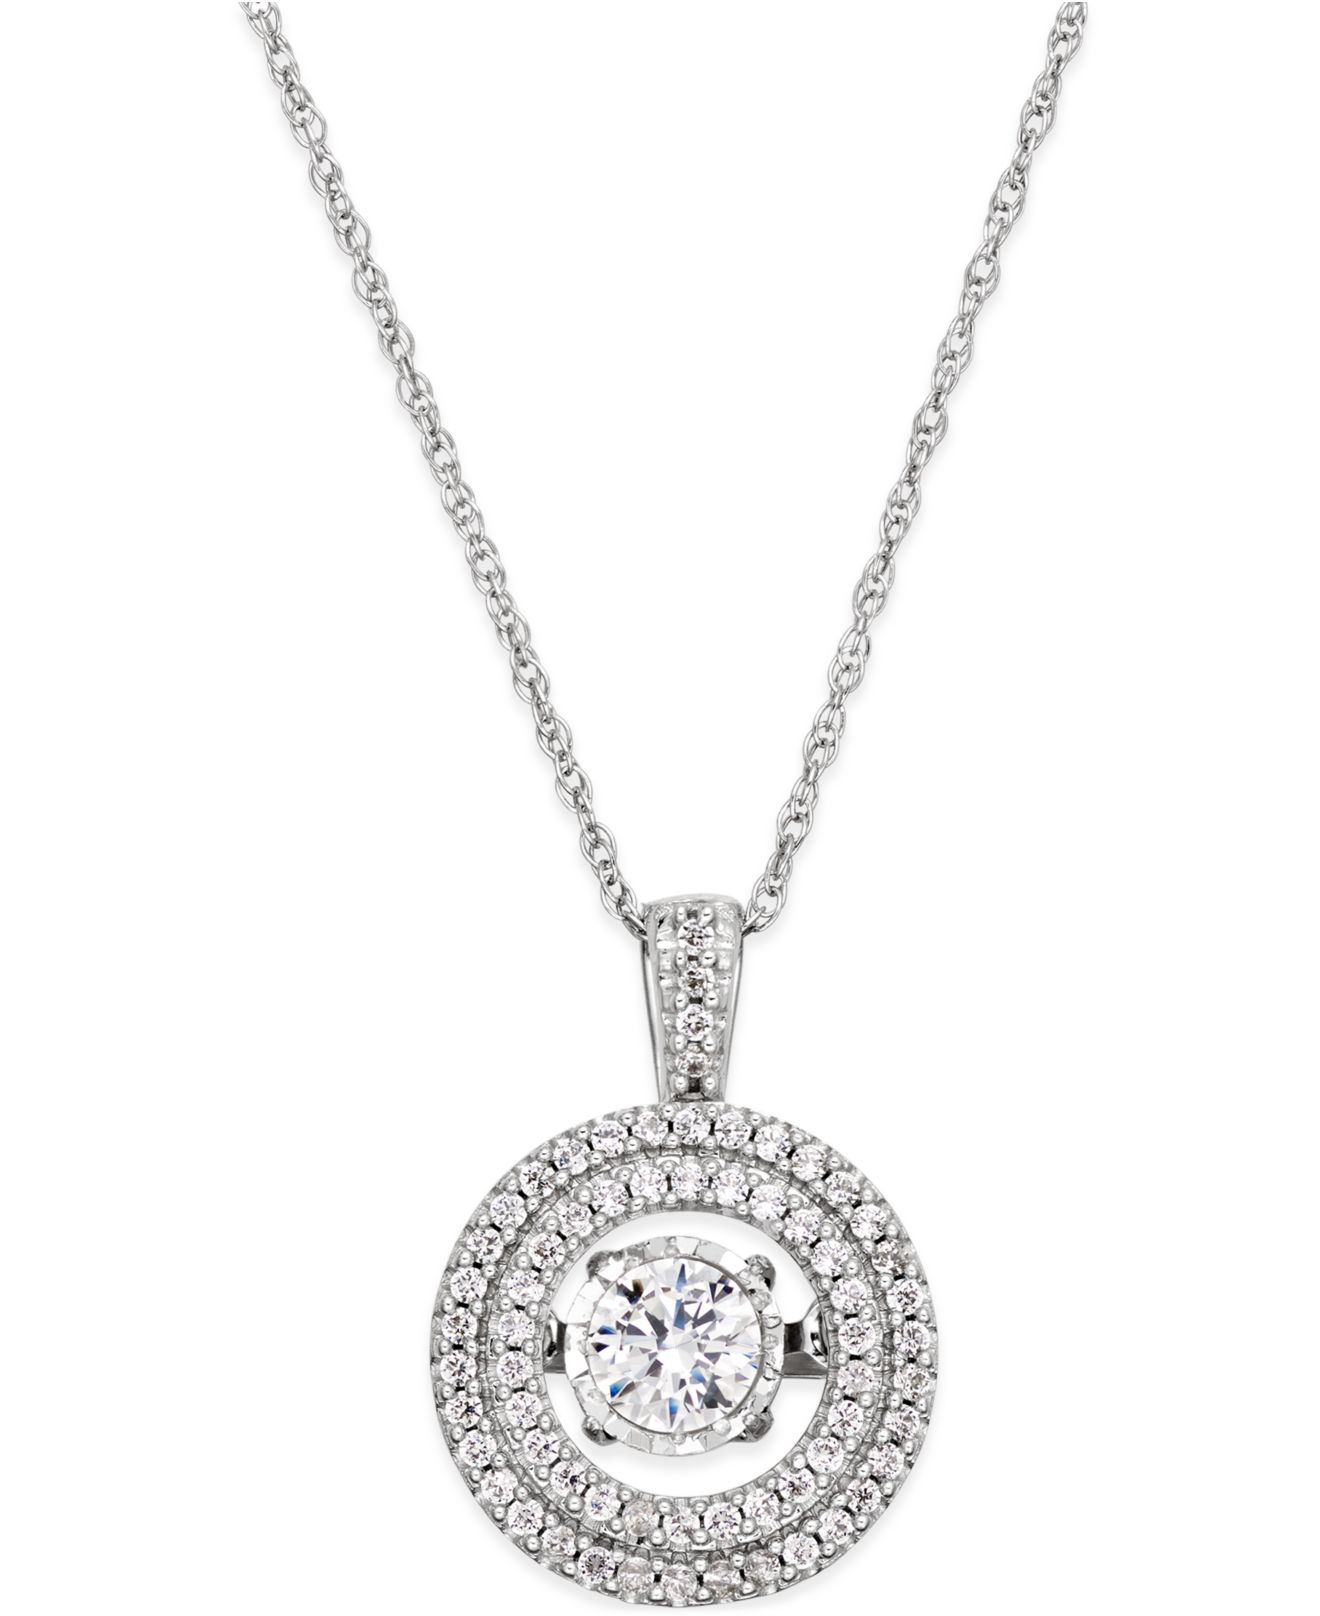 Twinkling diamond star Diamond Halo Twinkle Pendant Necklace 1 3